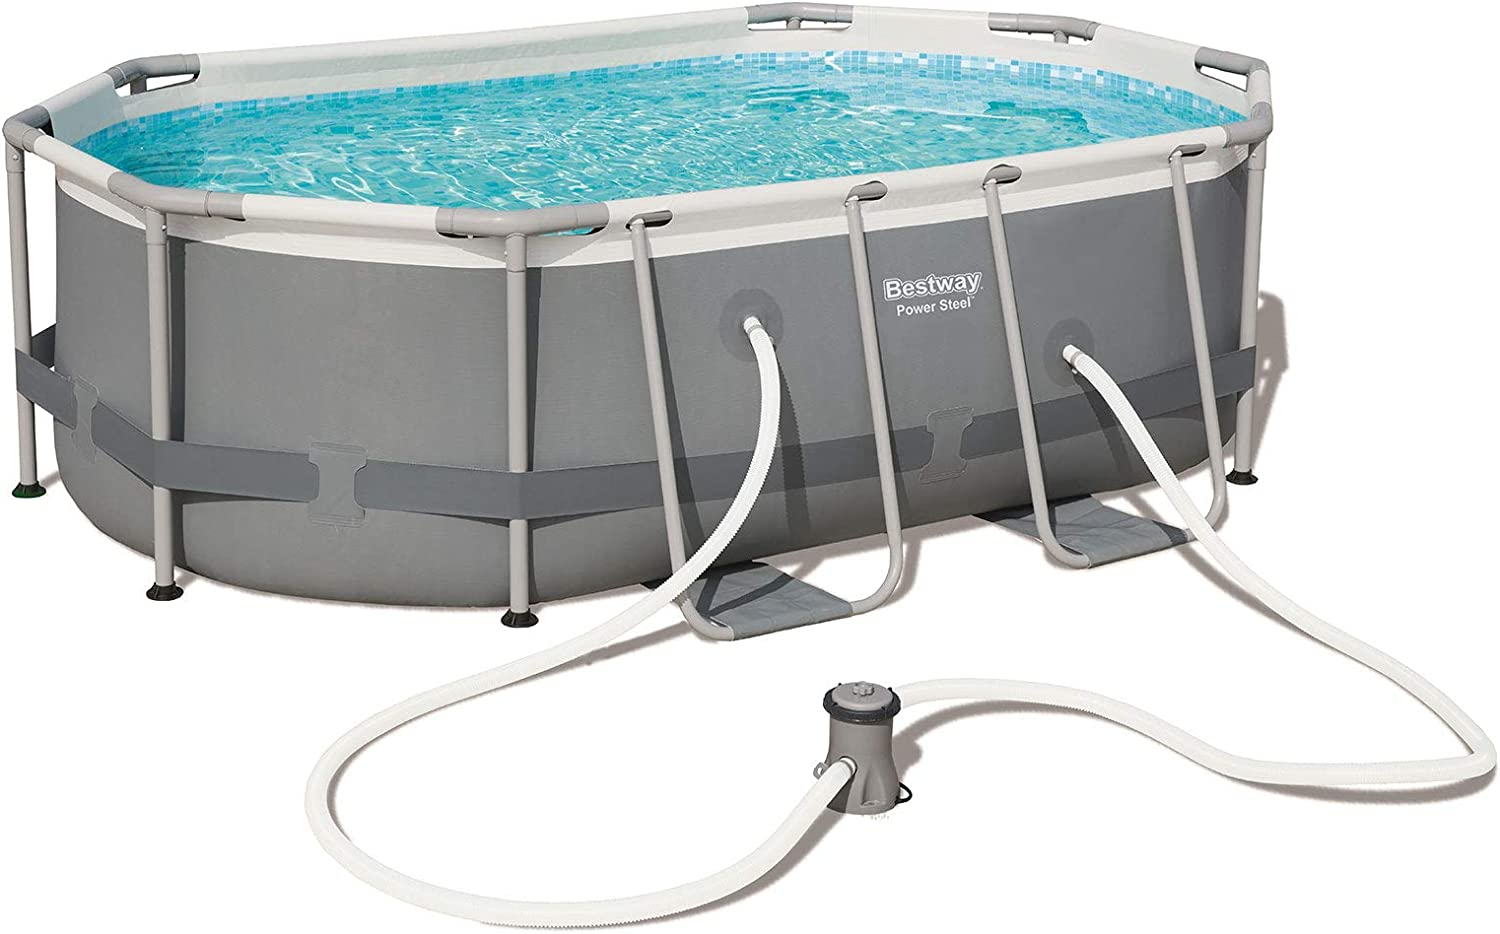 Bestway 56617 - Piscina Desmontable Tubular Power Steel Oval ...